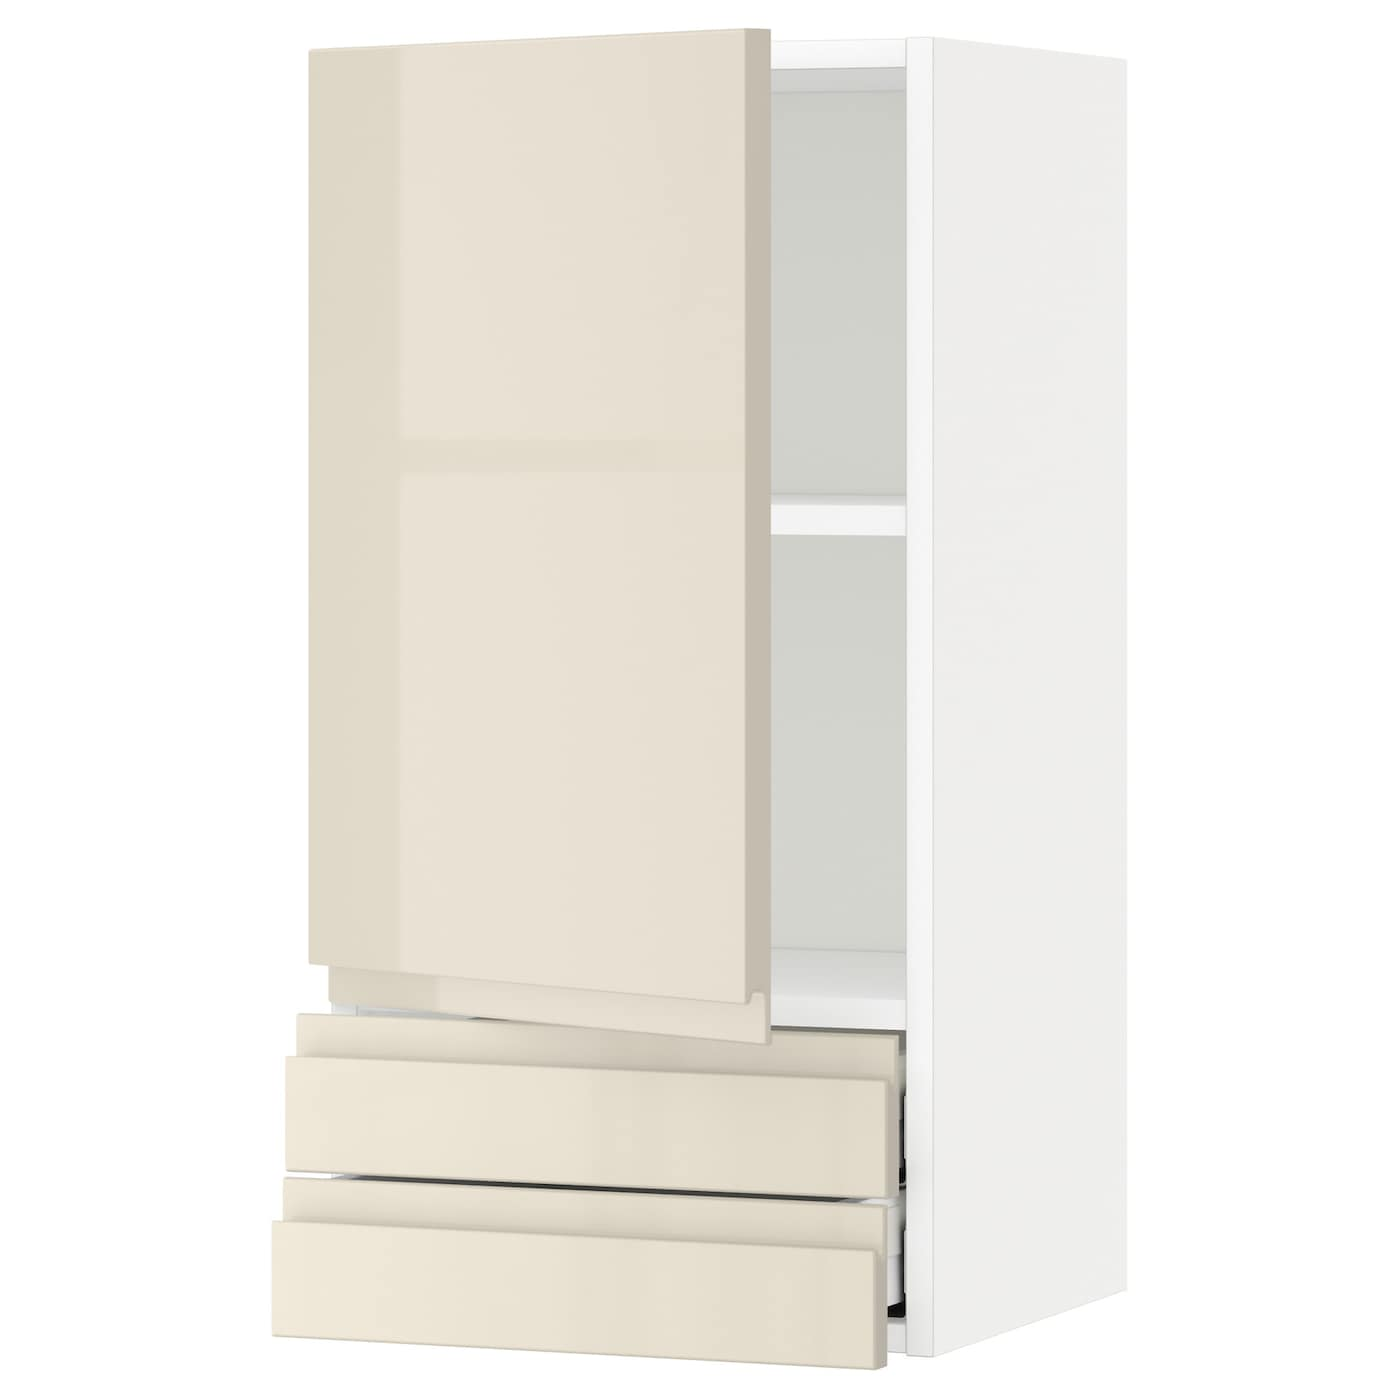 Metod maximera wall cabinet with door 2 drawers white for White gloss kitchen wall cupboards